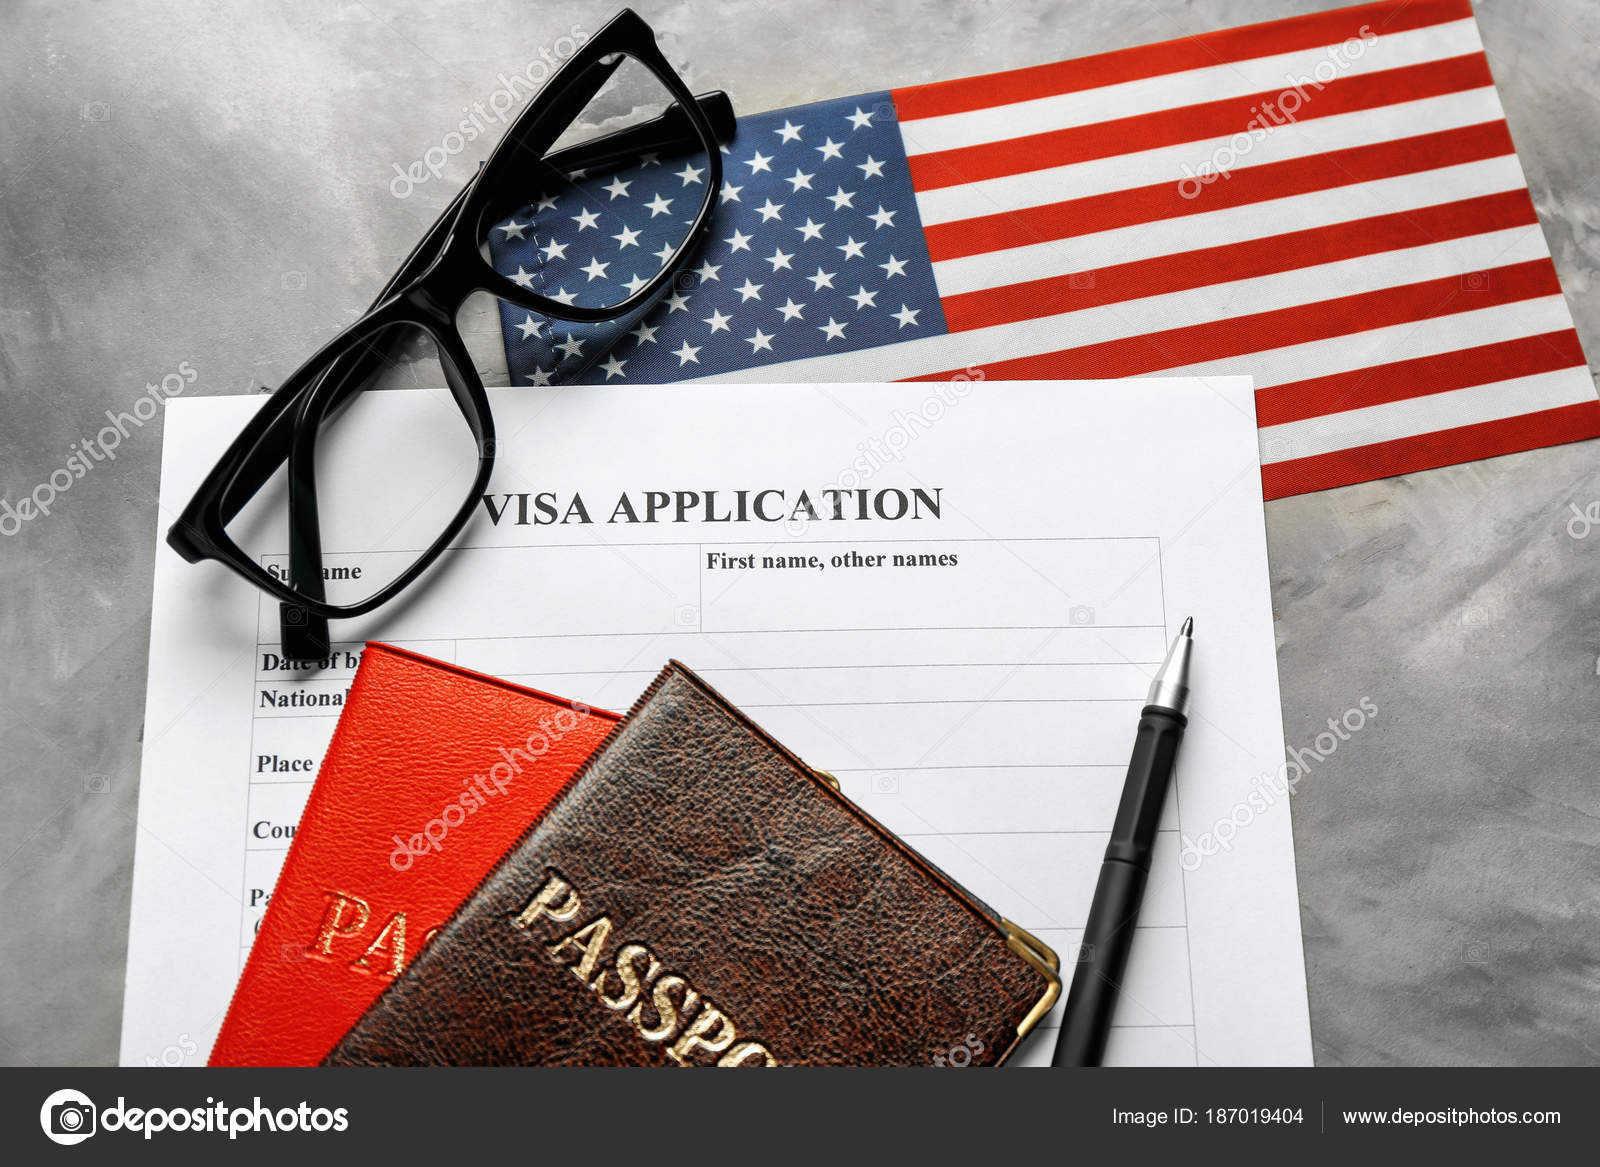 Passports, American flag and visa application form on table